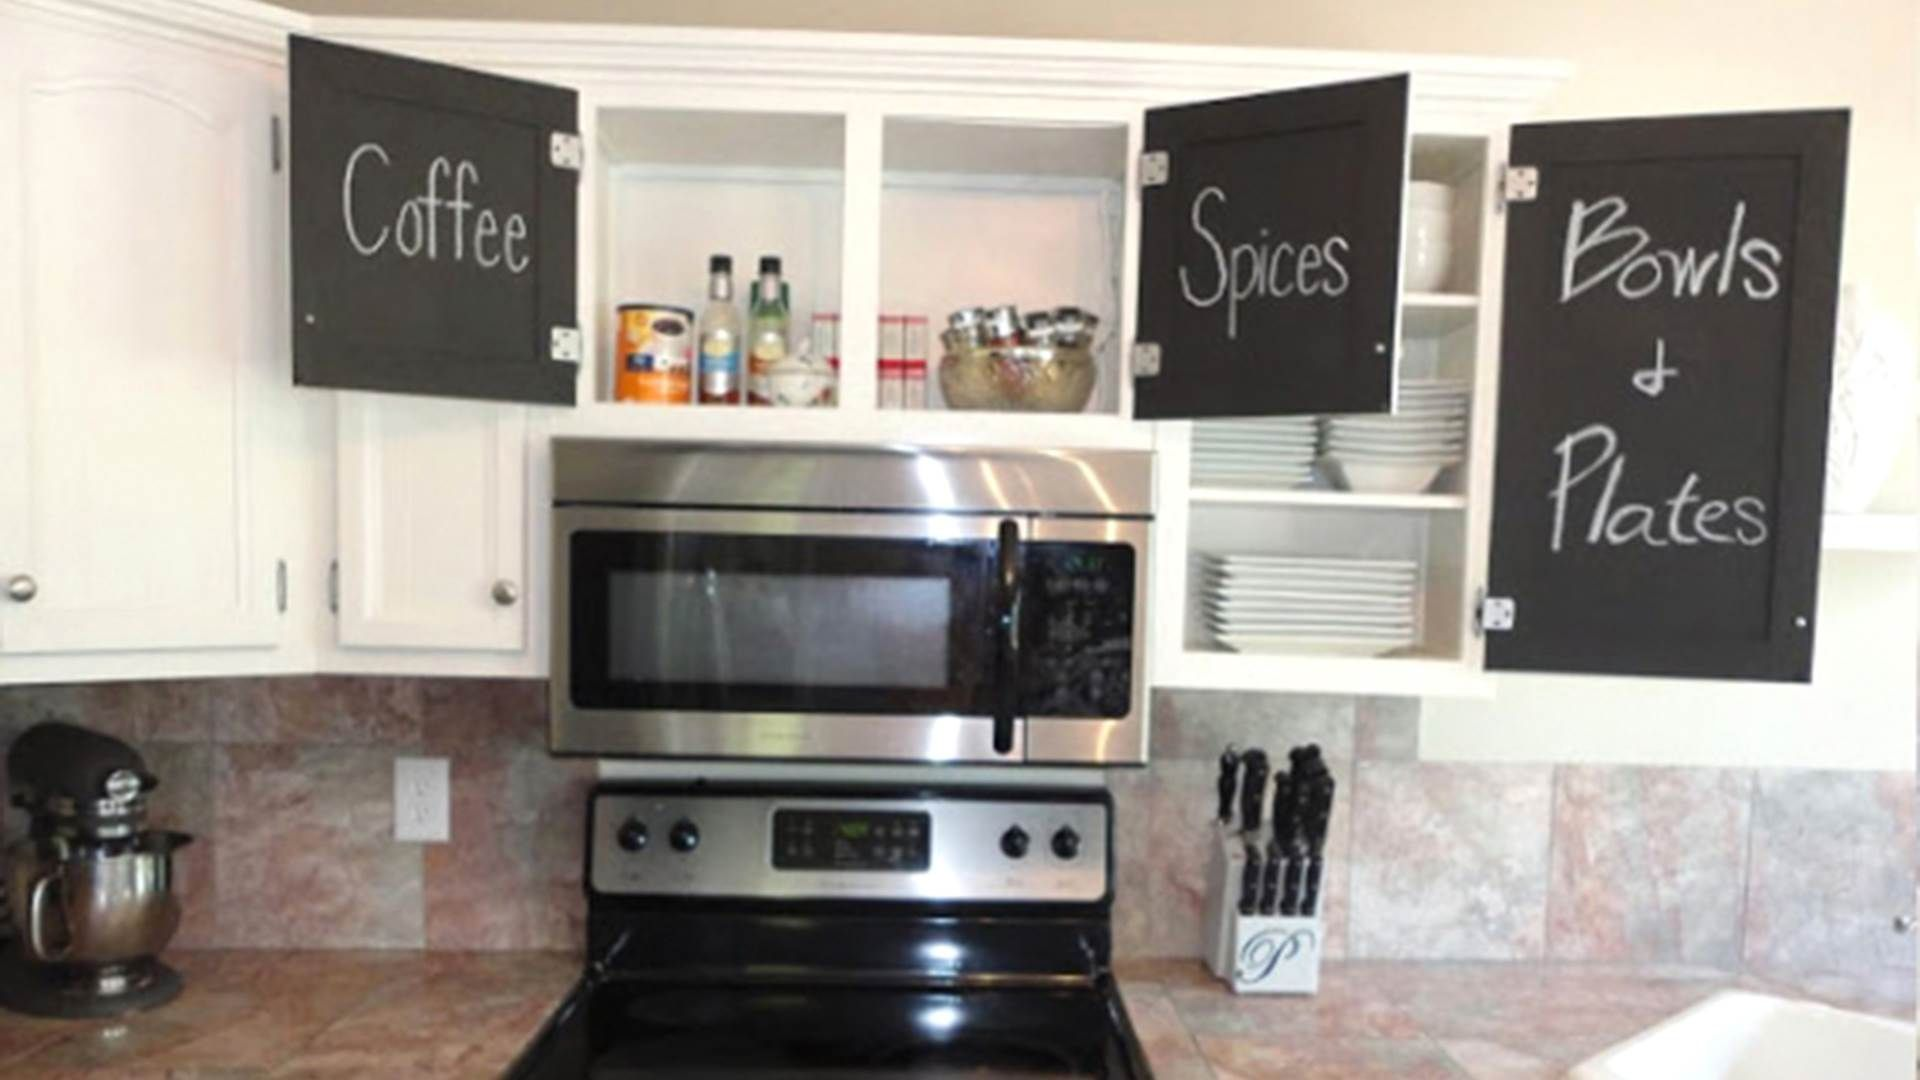 Decor Tips Diy Chalkboard Sign For Chalkboard Kitchen With Diy Chalkboard And White Kitchen Kitchen Cabinets Makeover Home Kitchens Inside Kitchen Cabinets